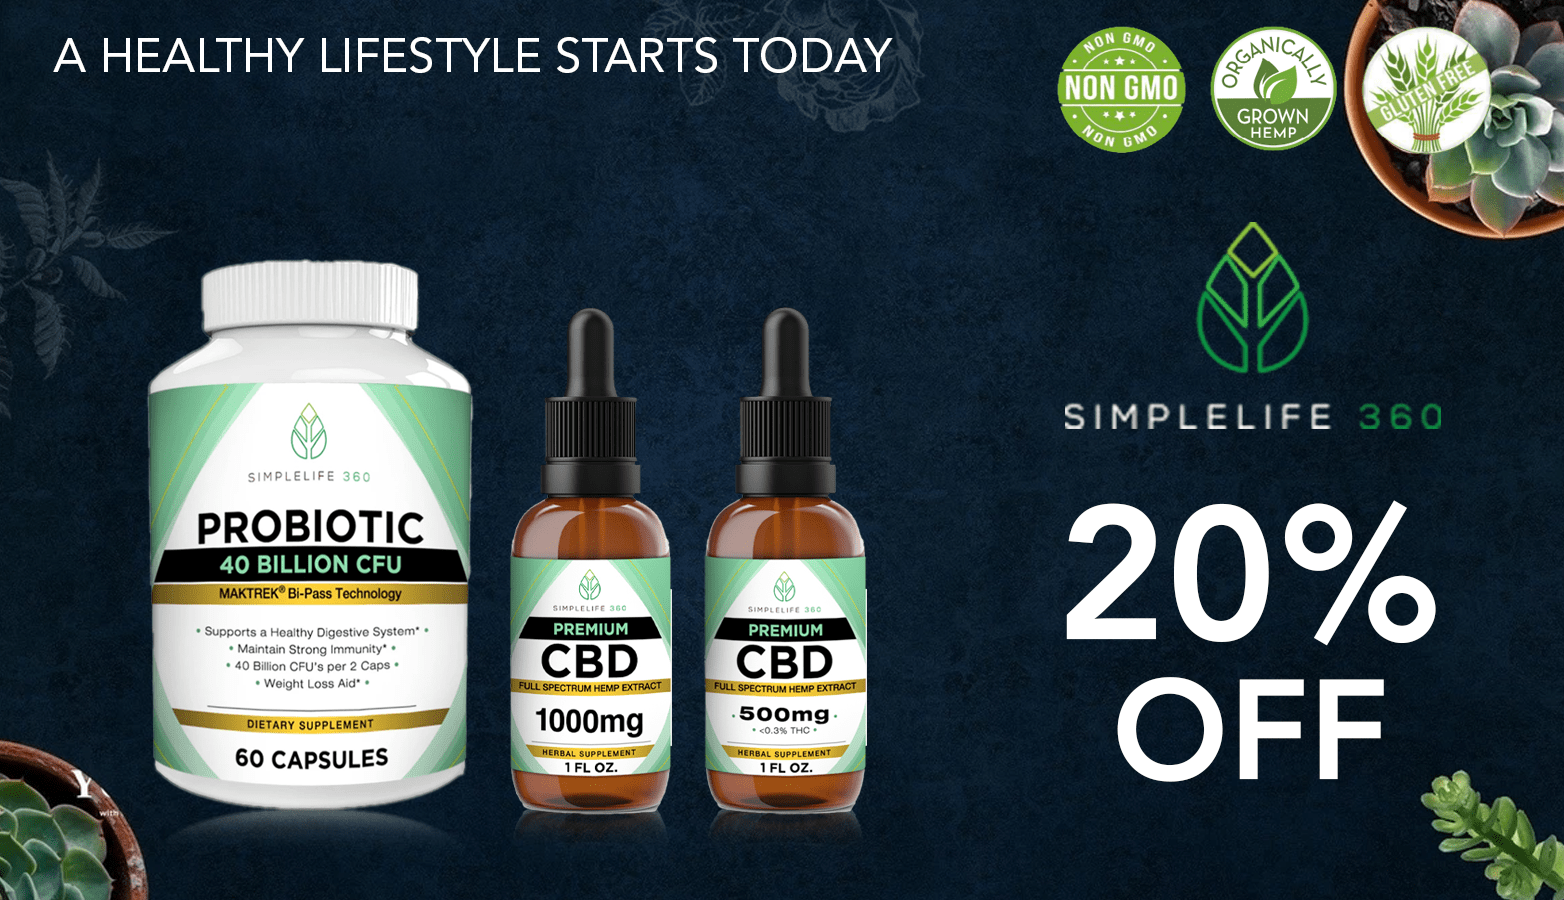 SimpleLife360 CBD Coupon Code discounts promos save on cannabis online Website